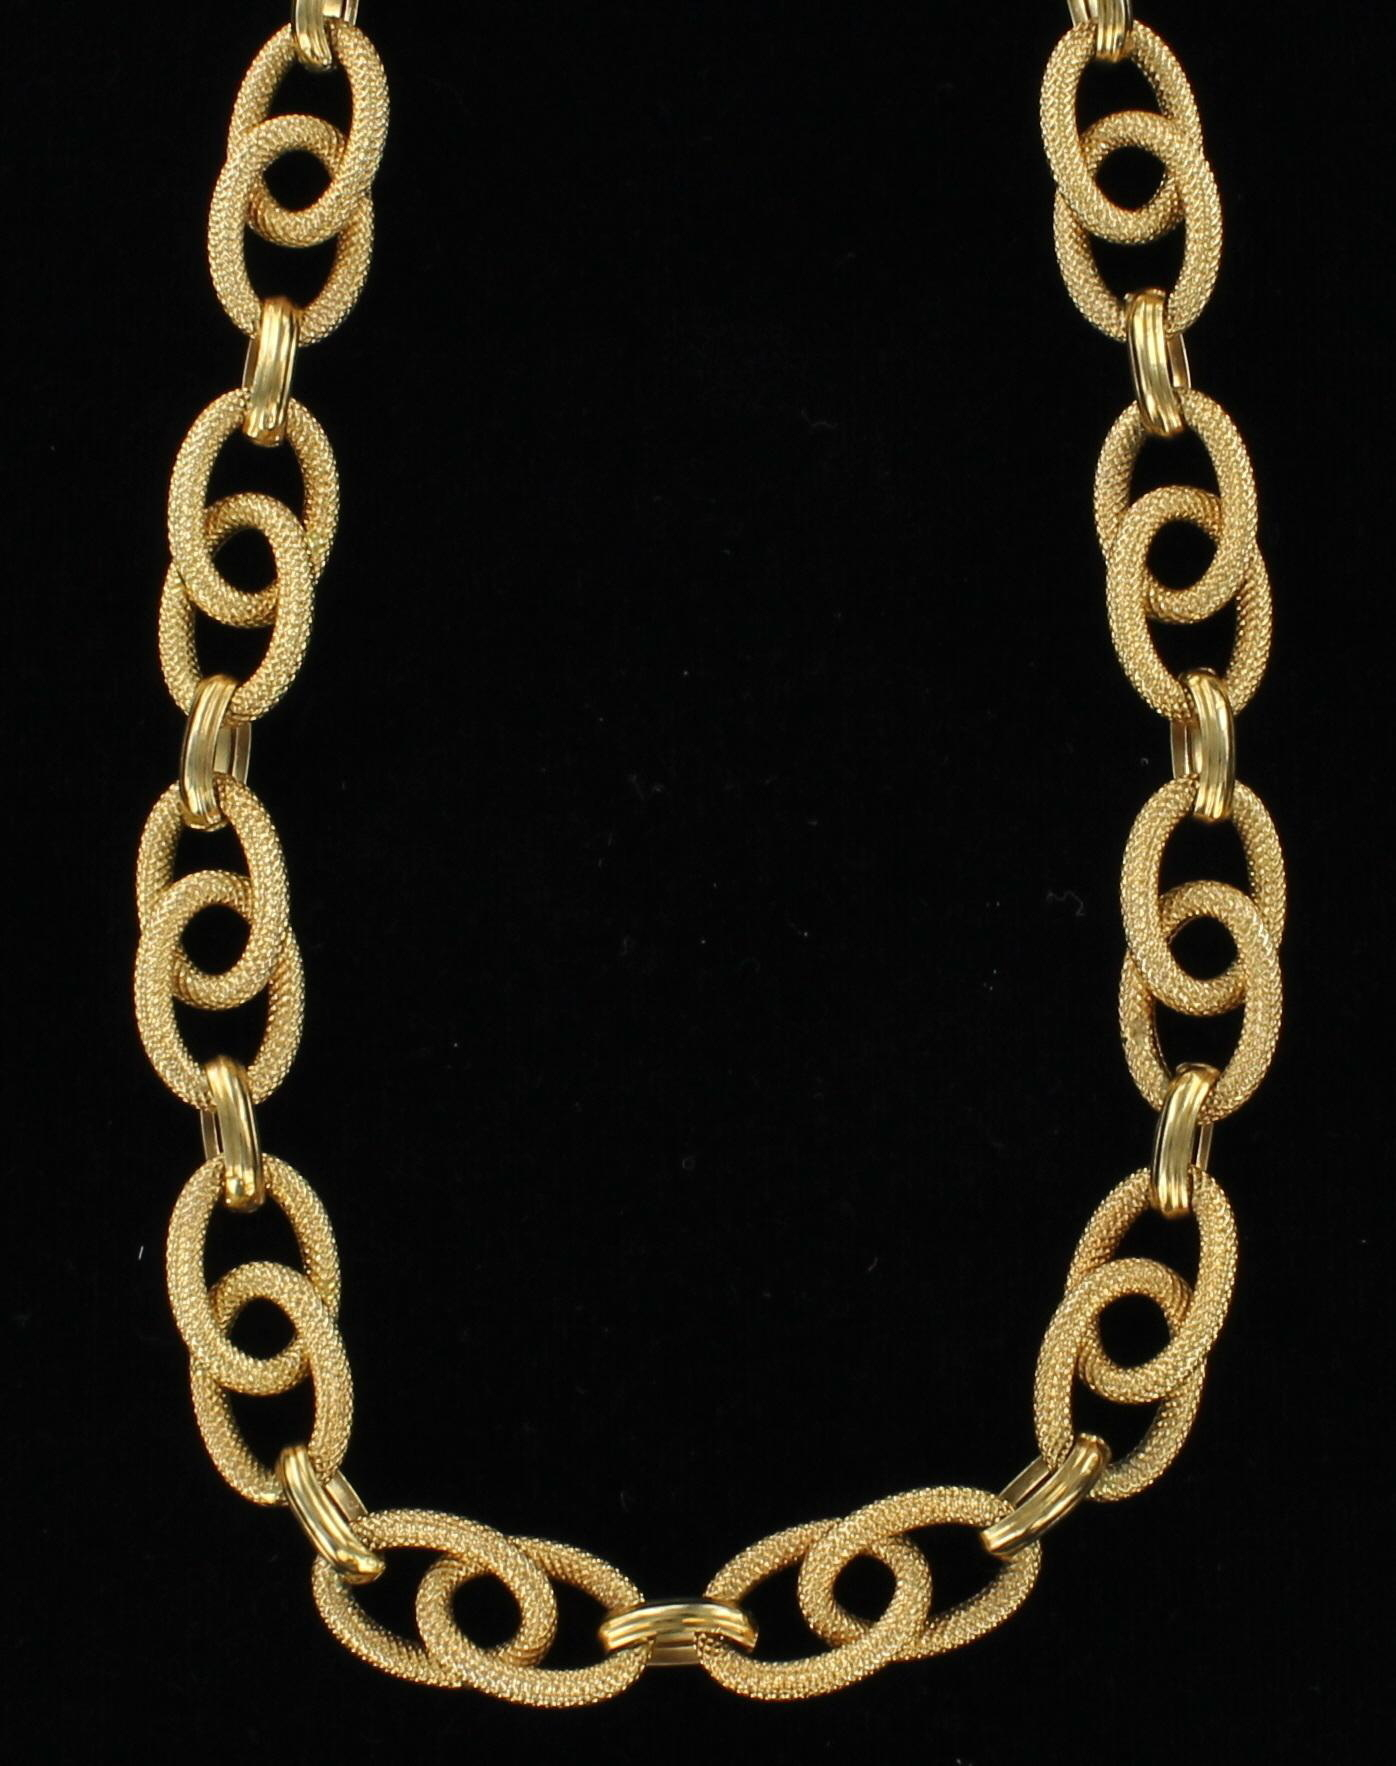 18KT CHAIN/NECKLACE 205-2214